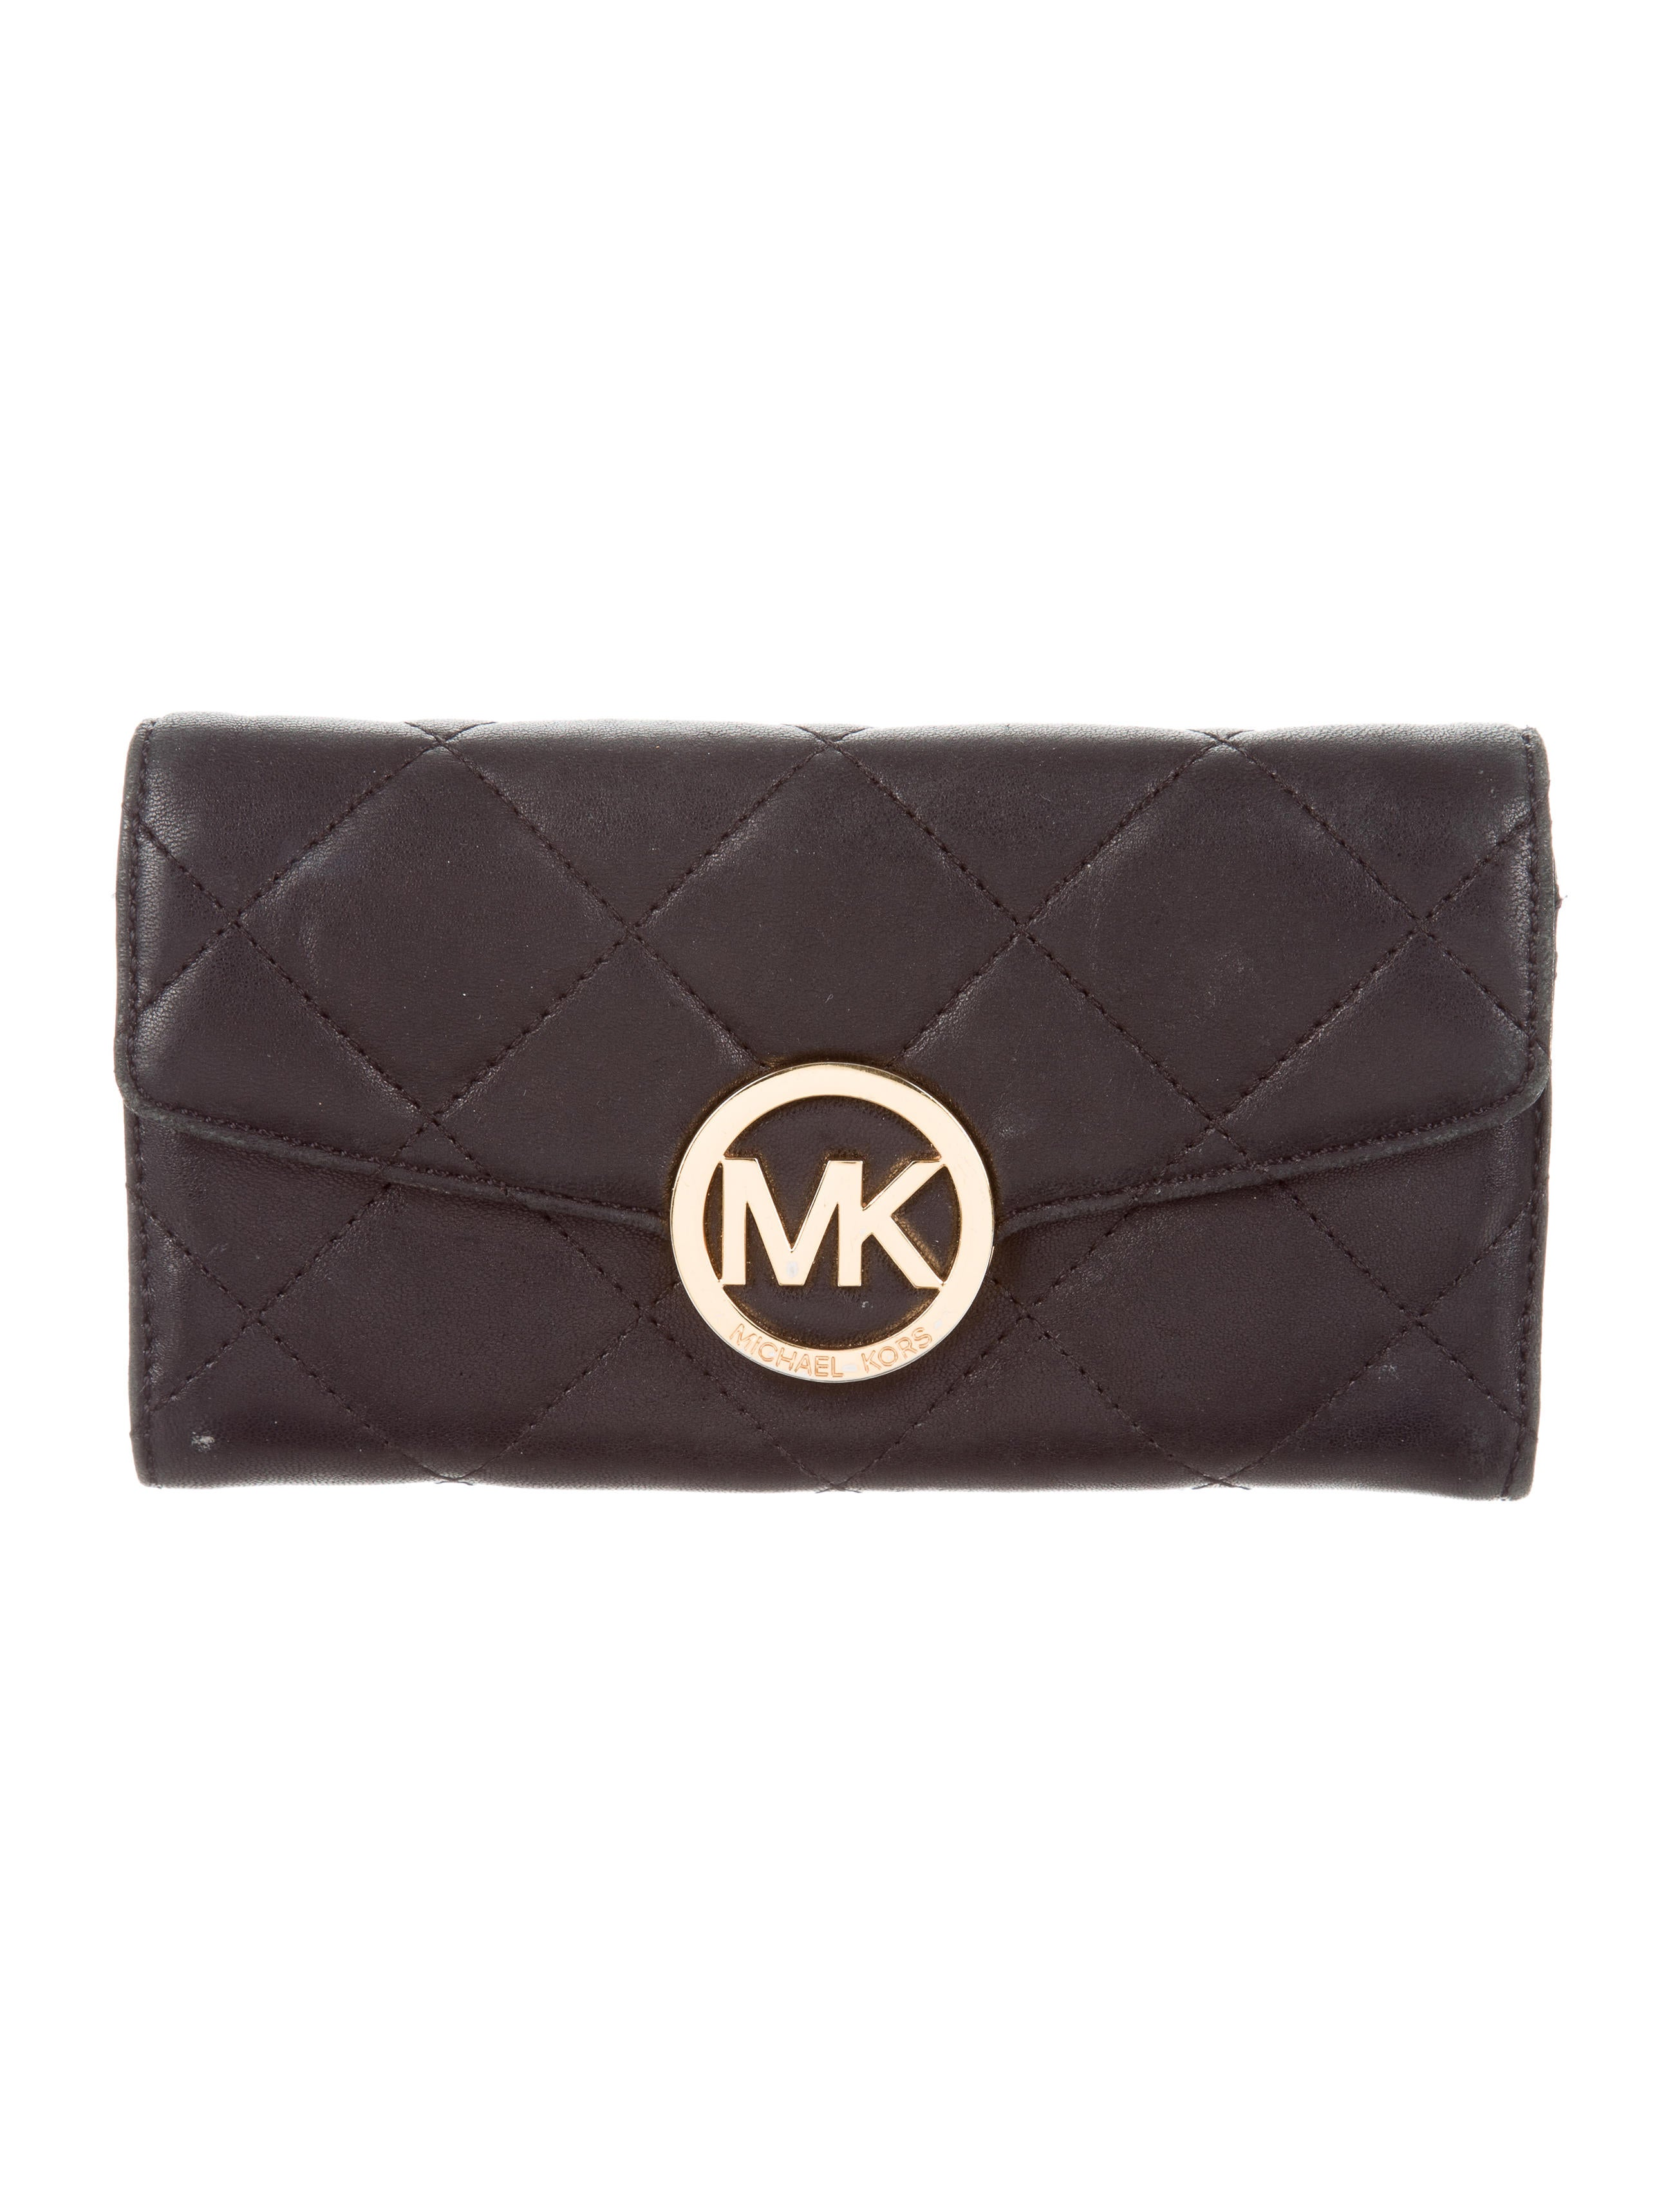 58b0830404df Small Logo And Leather Wallet Michael Kors | Stanford Center for ...